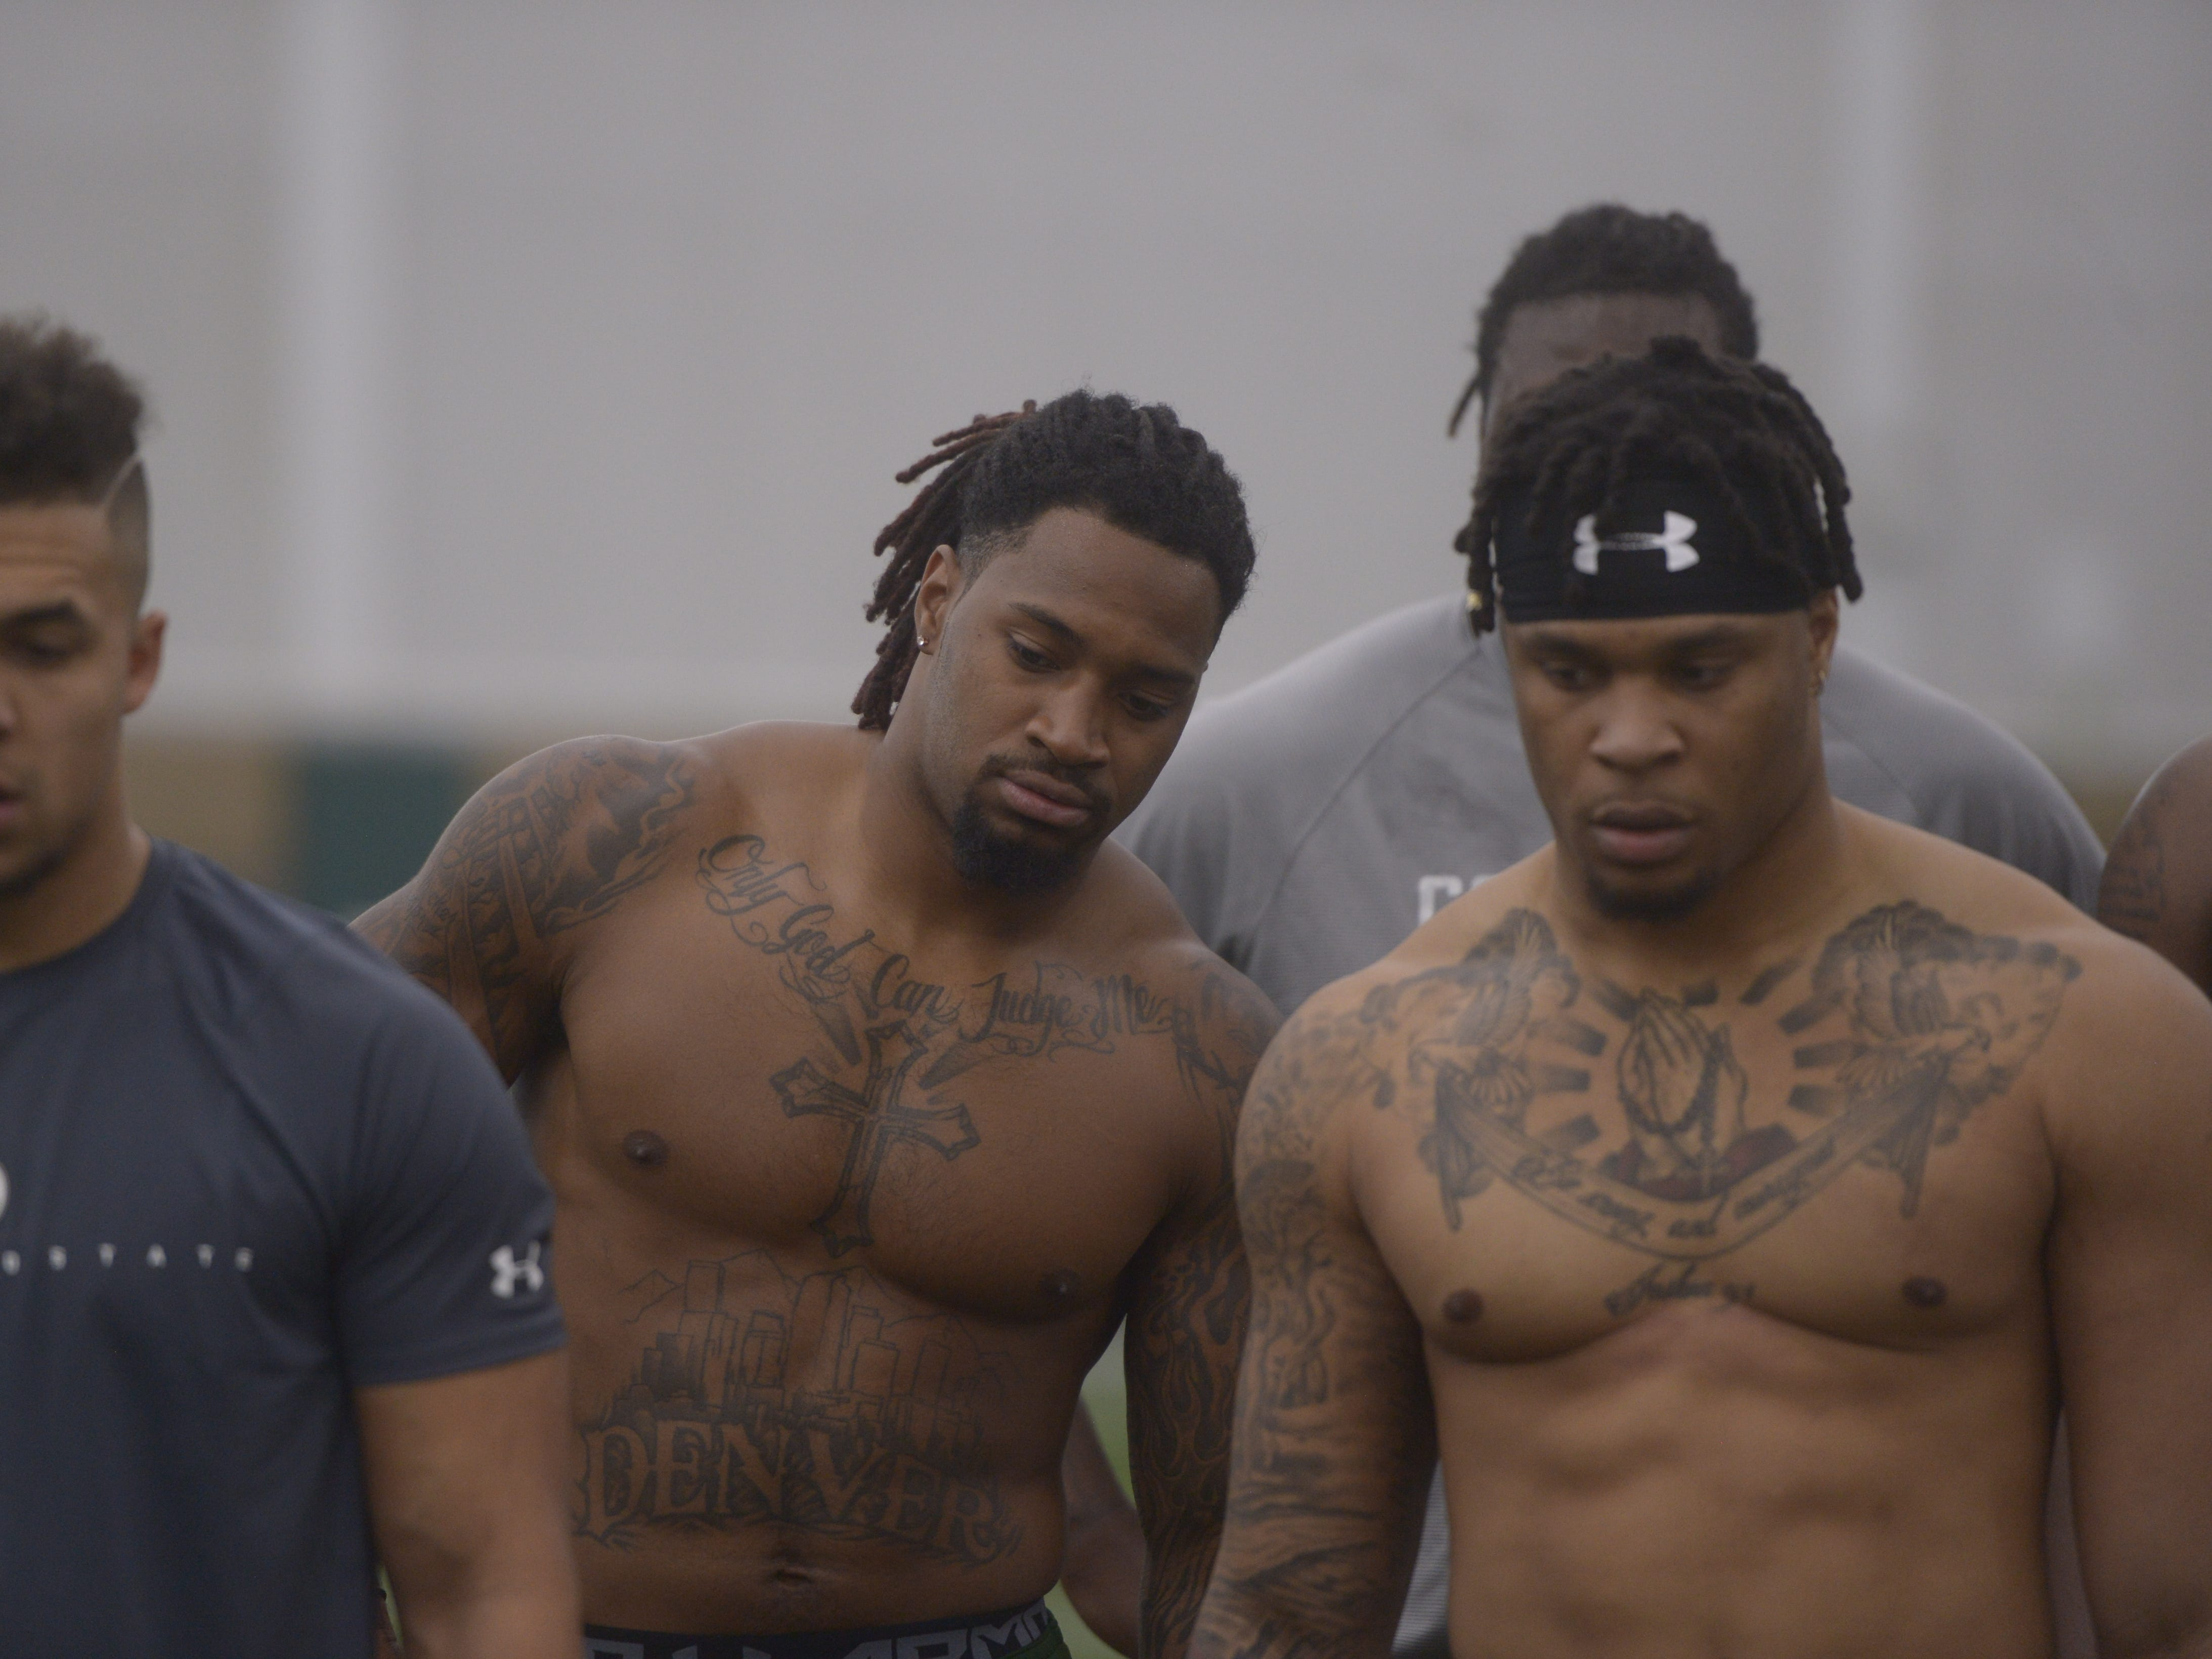 Former Colorado State football players, from left to right, Izzy Matthews, Tre Thomas and Josh Watson watch a scout demonstrate a drill at CSU's pro day in the Indoor Practice Facility on Wednesday, March 6, 2019.